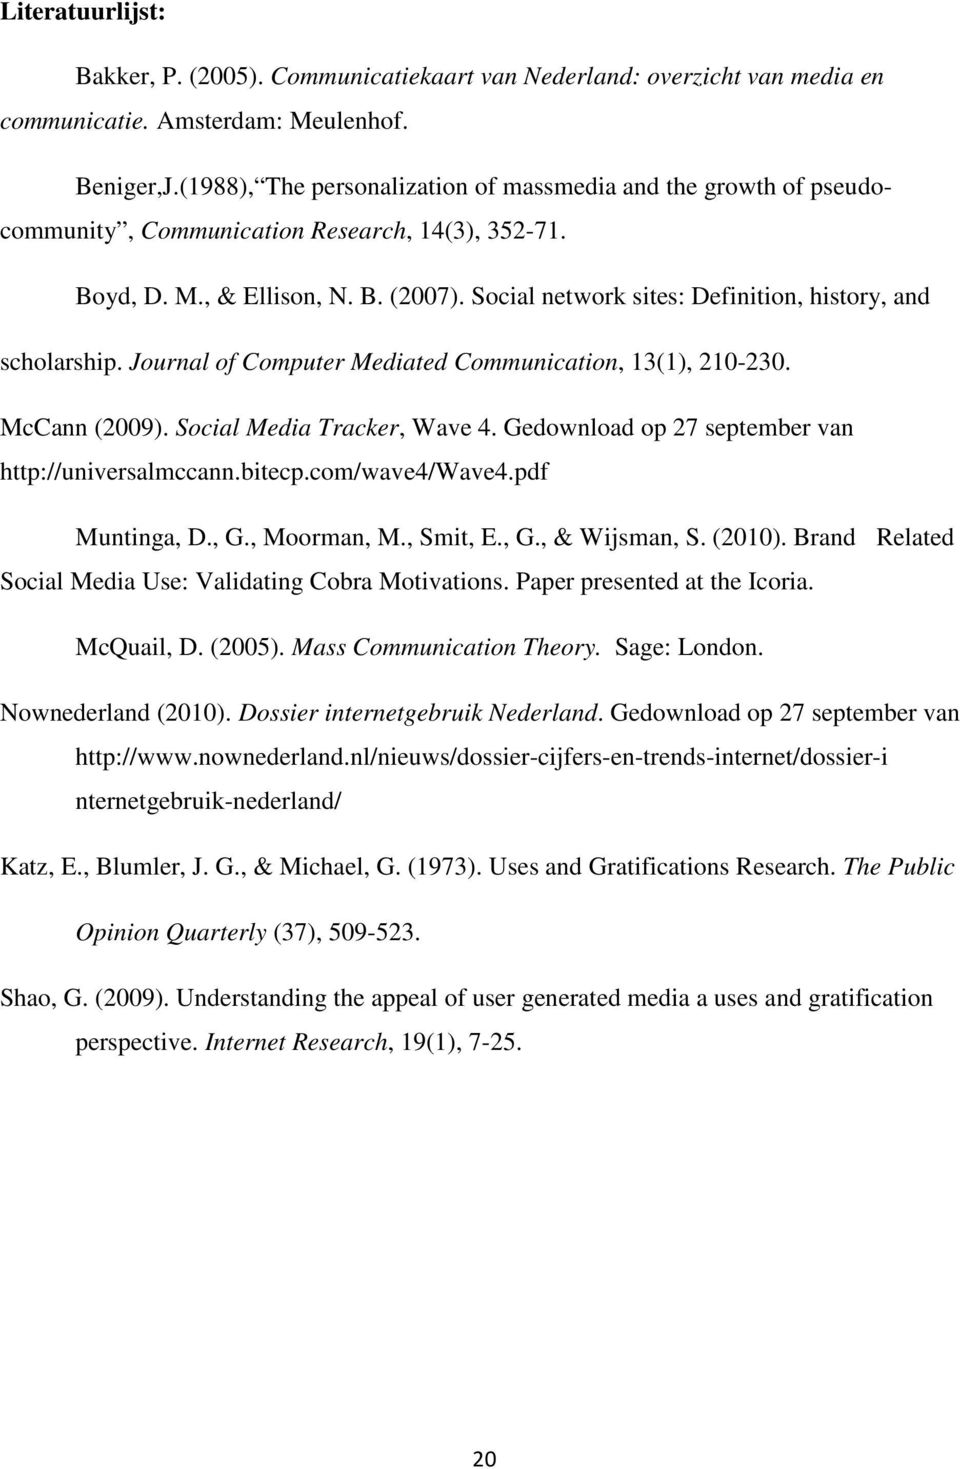 Social network sites: Definition, history, and scholarship. Journal of Computer Mediated Communication, 13(1), 210-230. McCann (2009). Social Media Tracker, Wave 4.